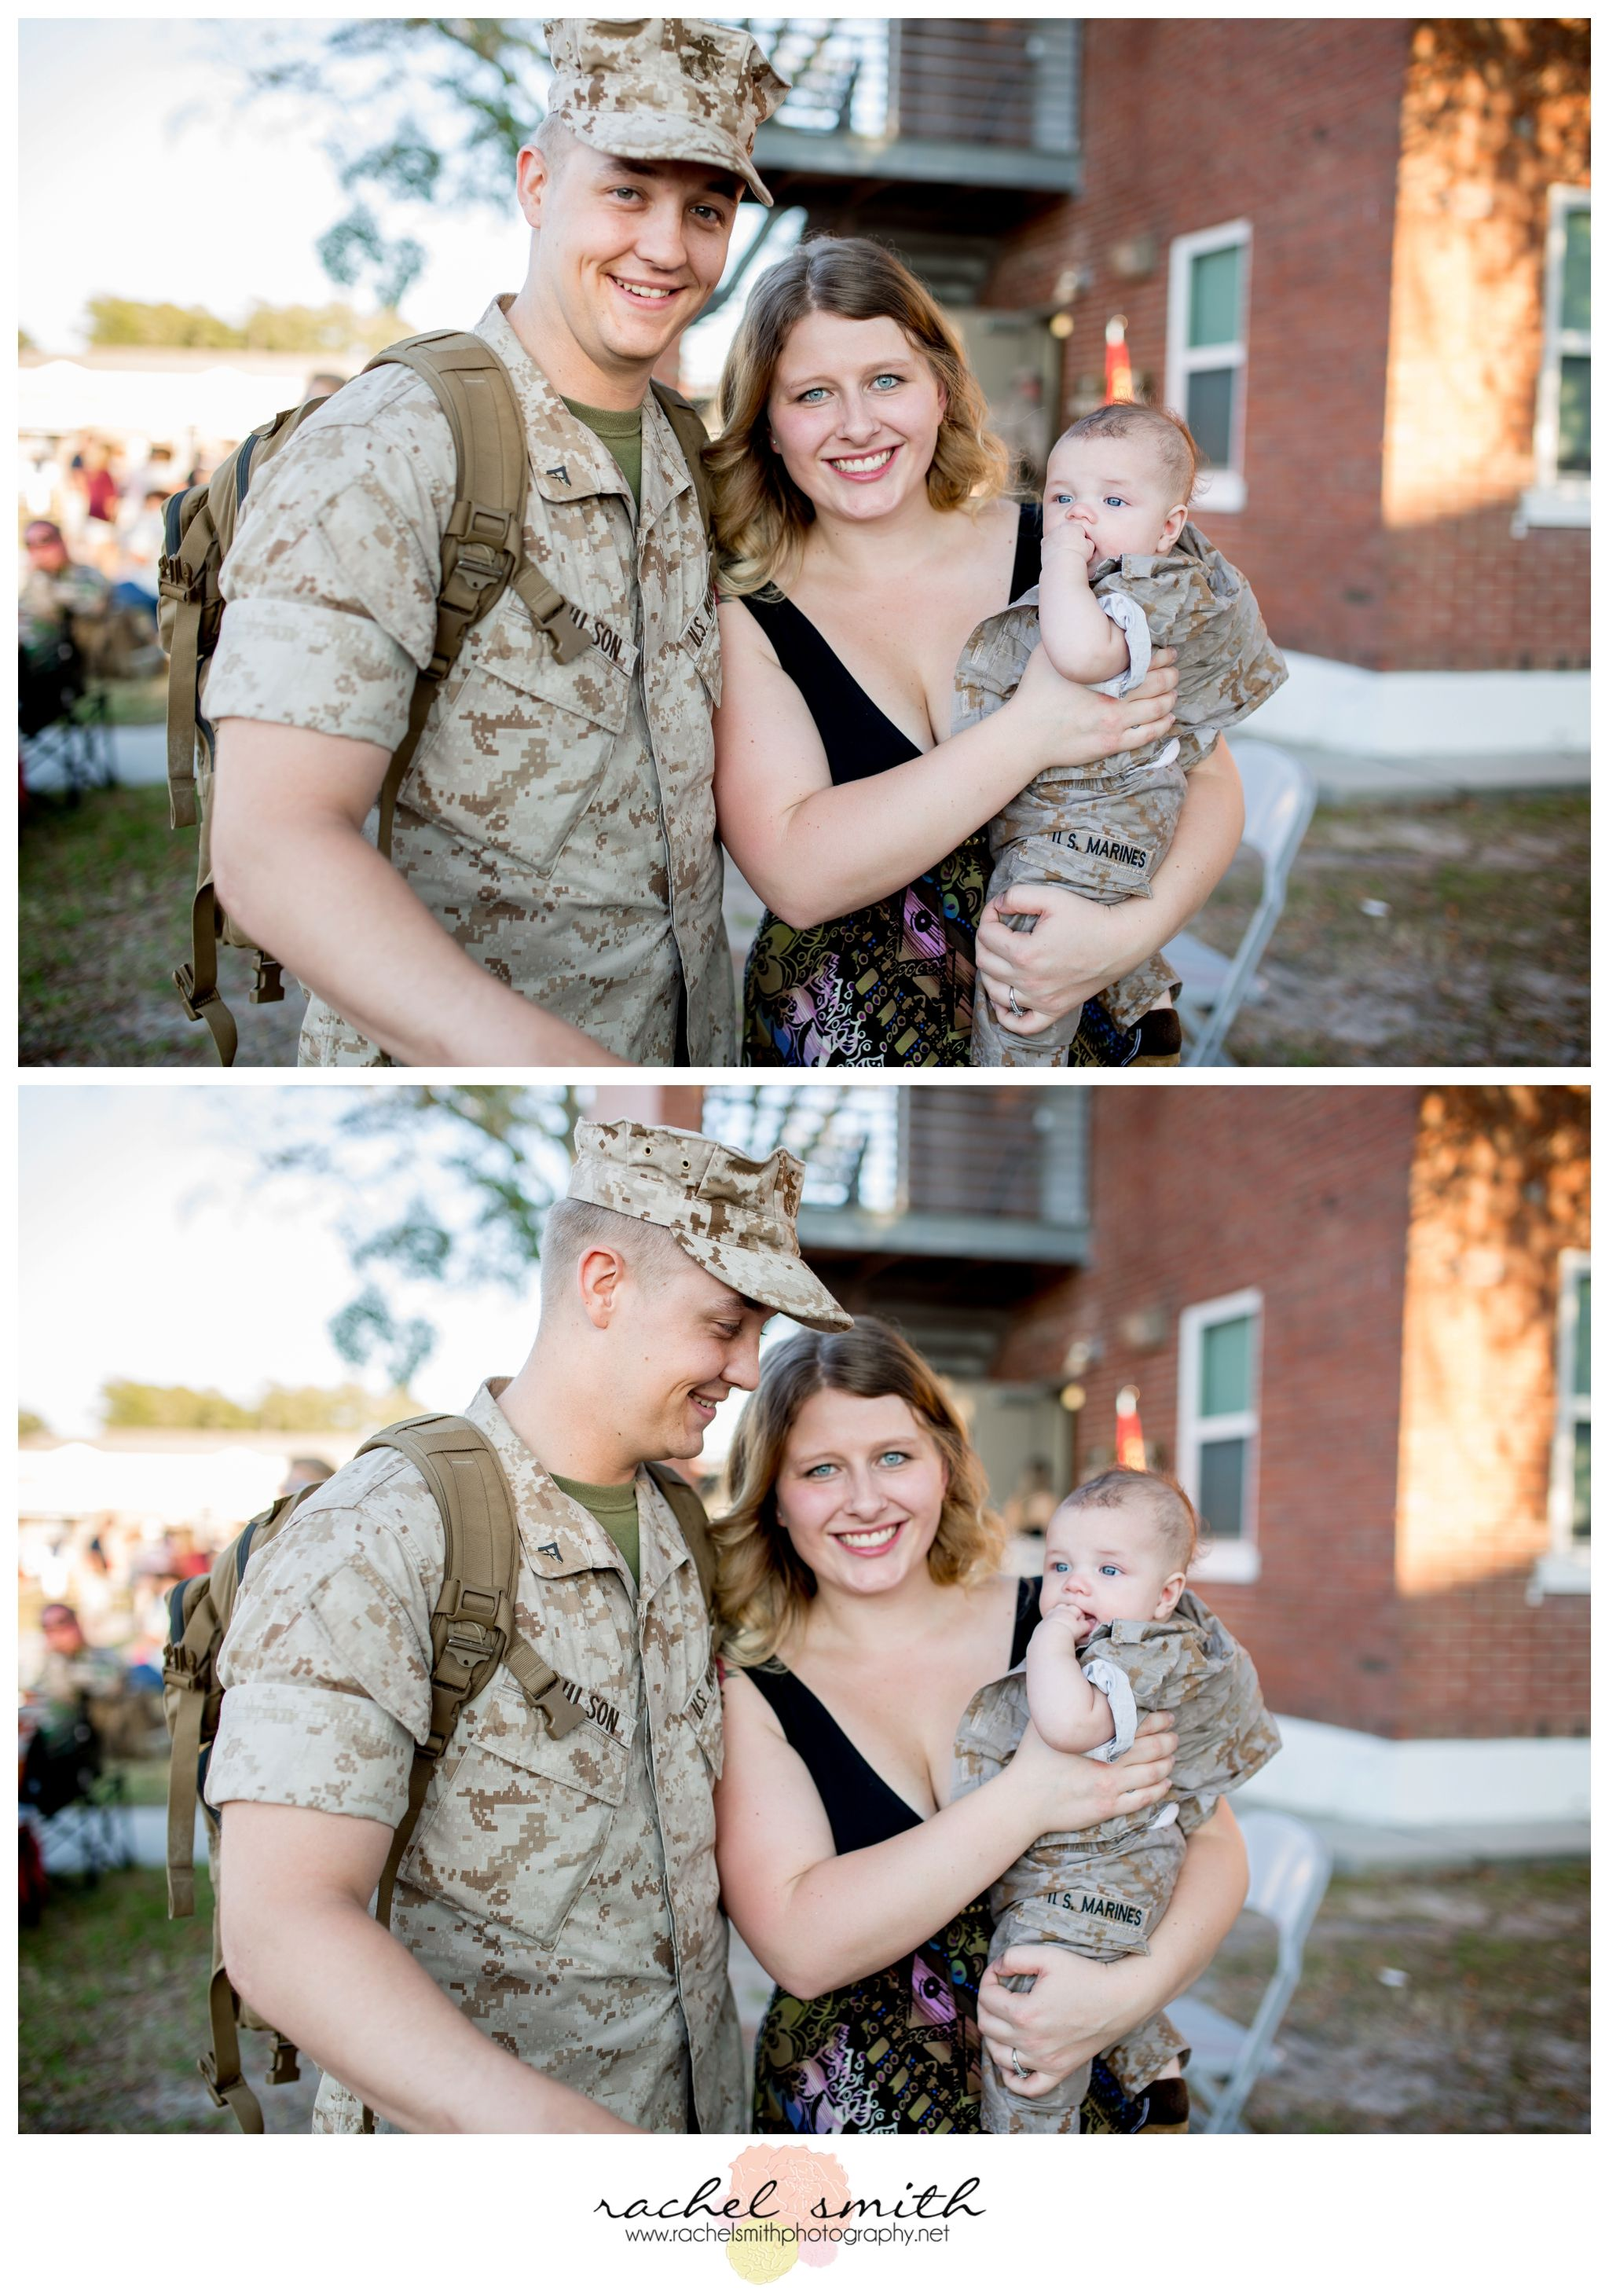 Military Homecoming, Marine Corps Homecoming, Camp Lejeune NC, Military, Rachel Smith Photography, Jacksonville NC Homecoming Photographer, daddy meets baby boy for first time